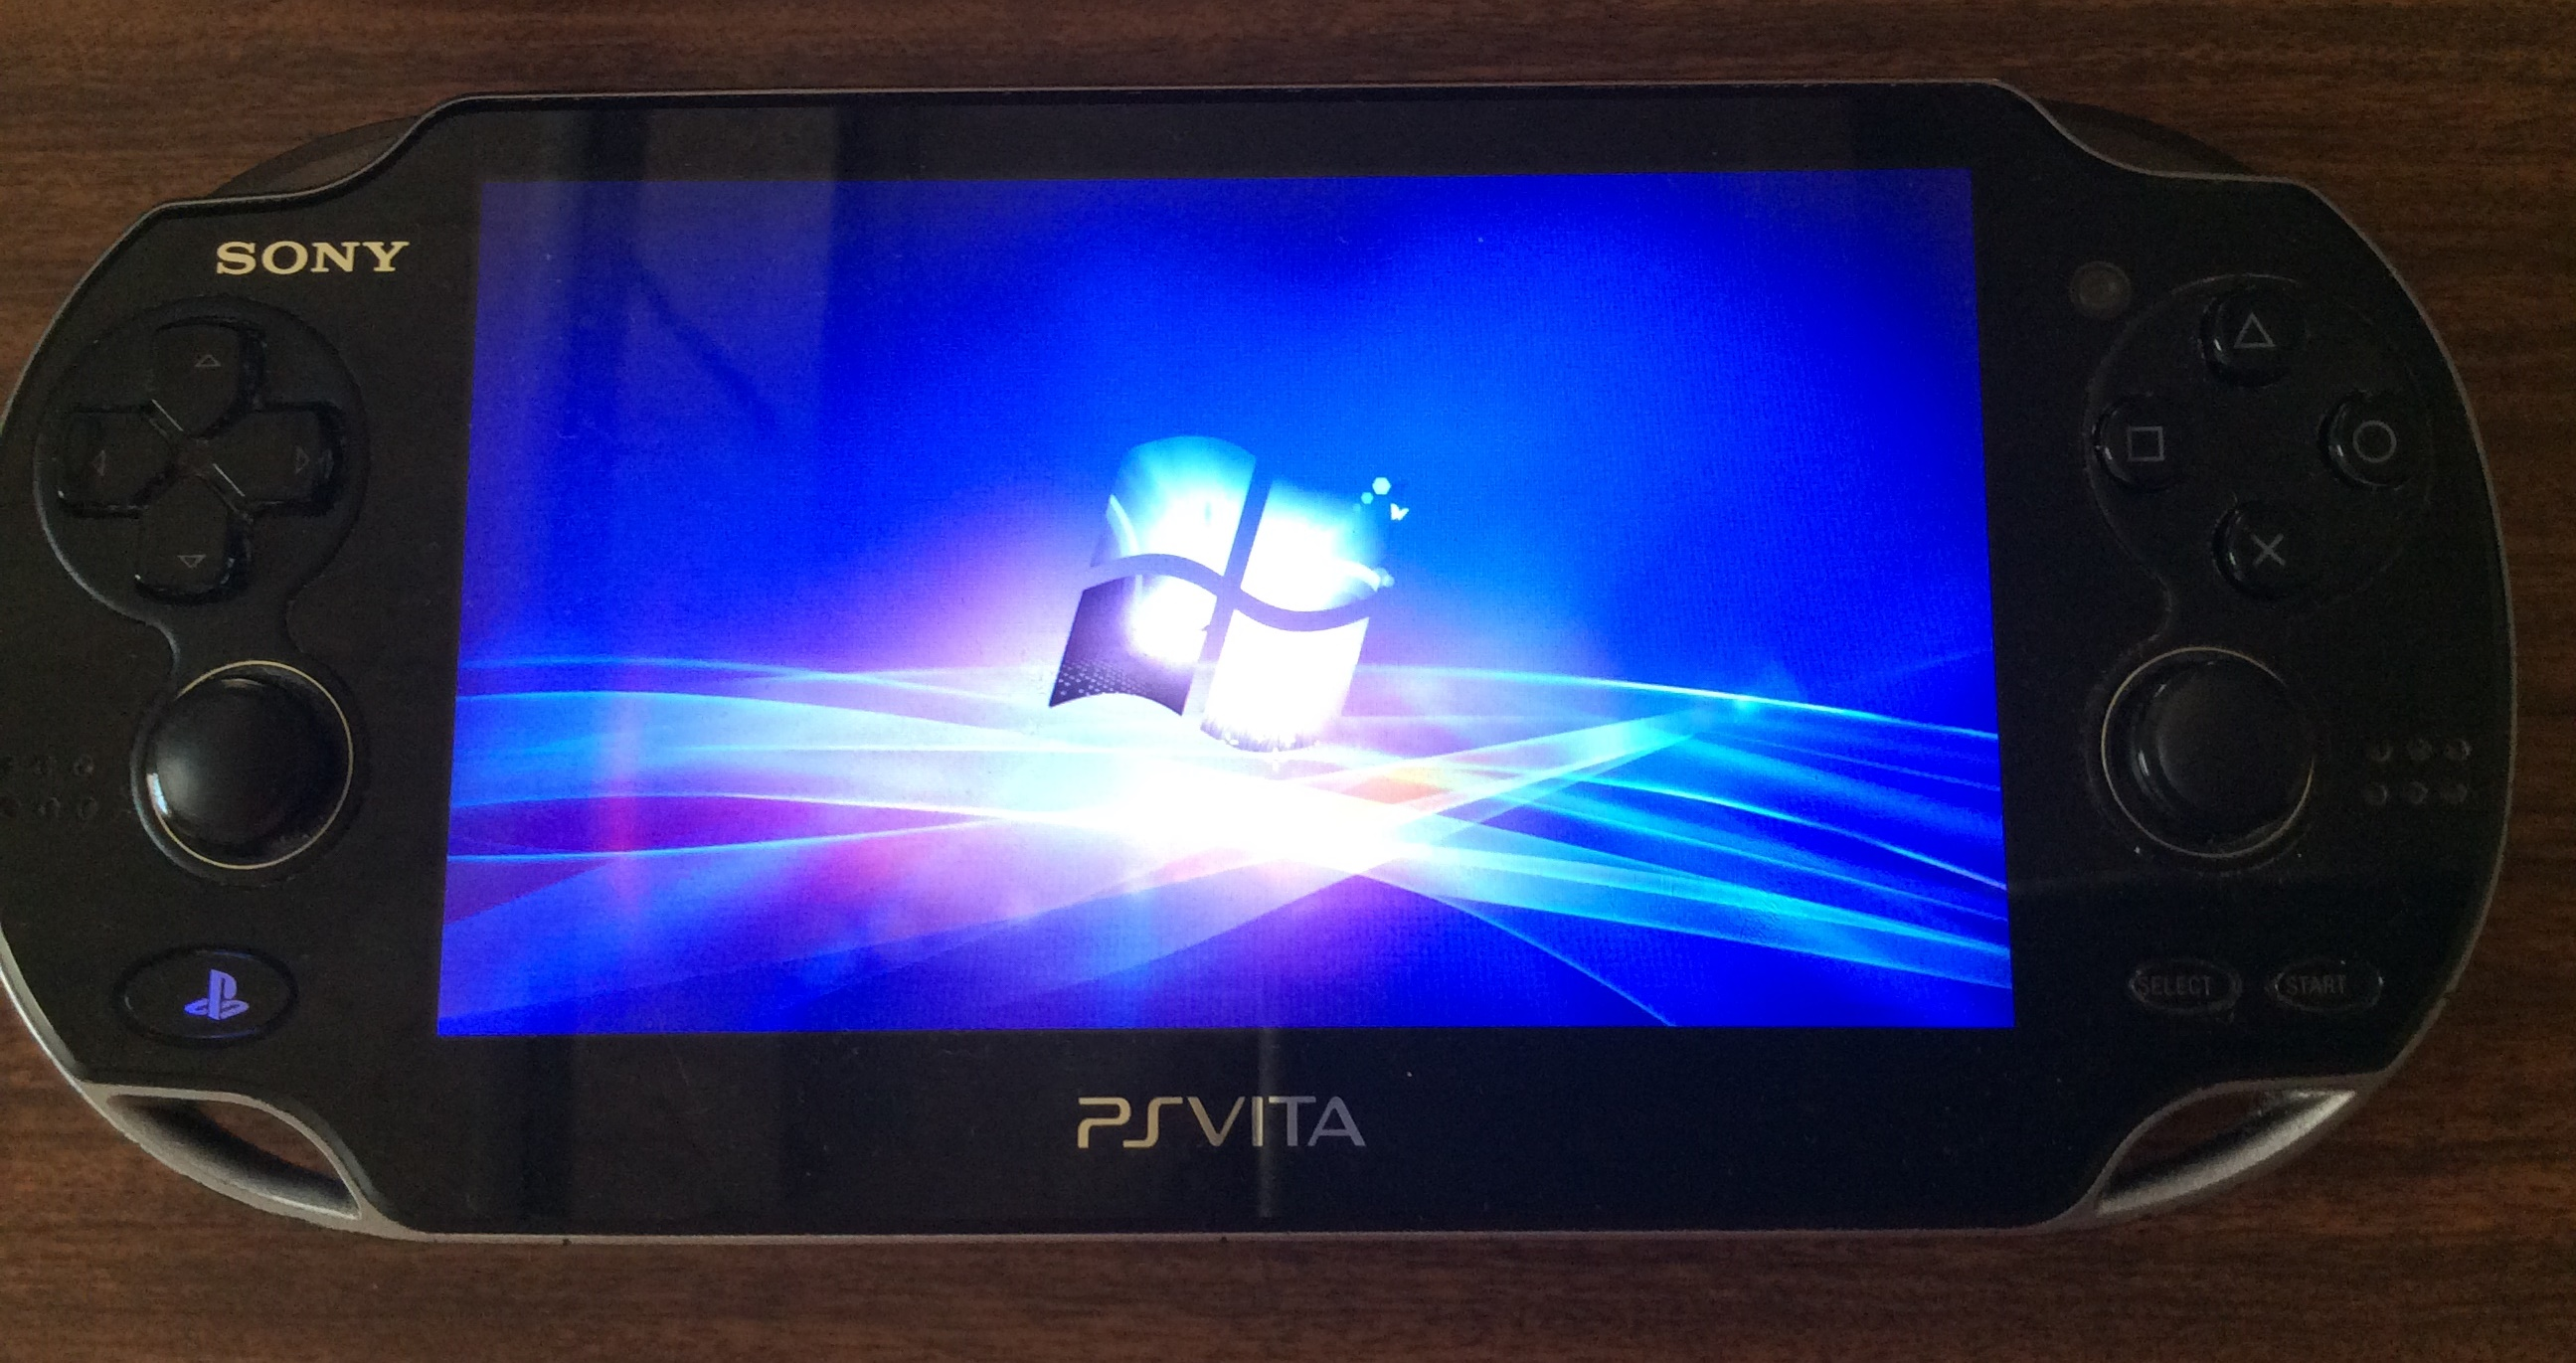 Custom Boot Splash plugin for the PSVita / PSTV released